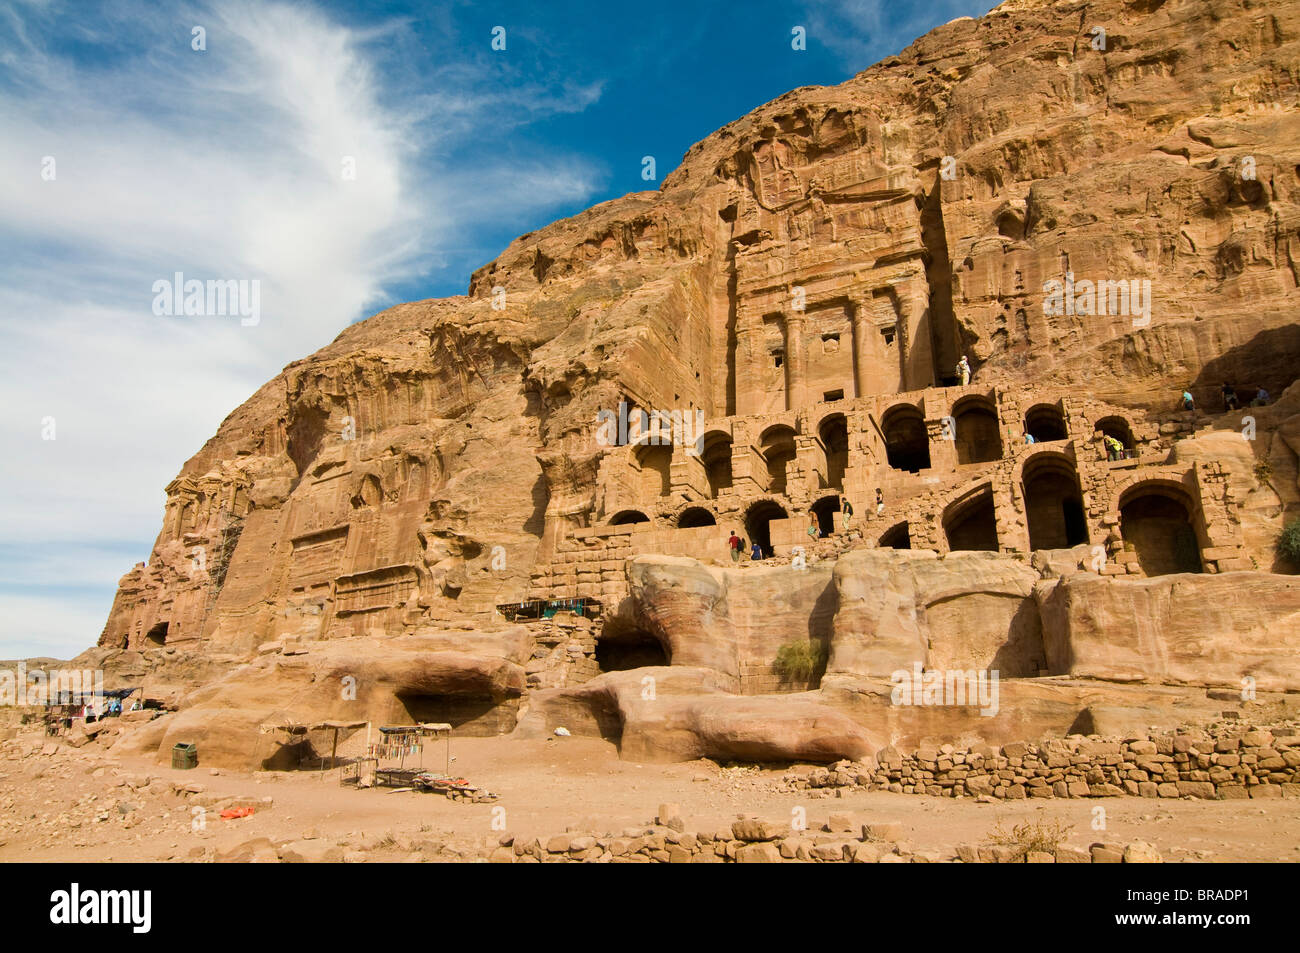 The royal tombs of Petra, UNESCO World Heritage Site, Jordan, Middle East - Stock Image